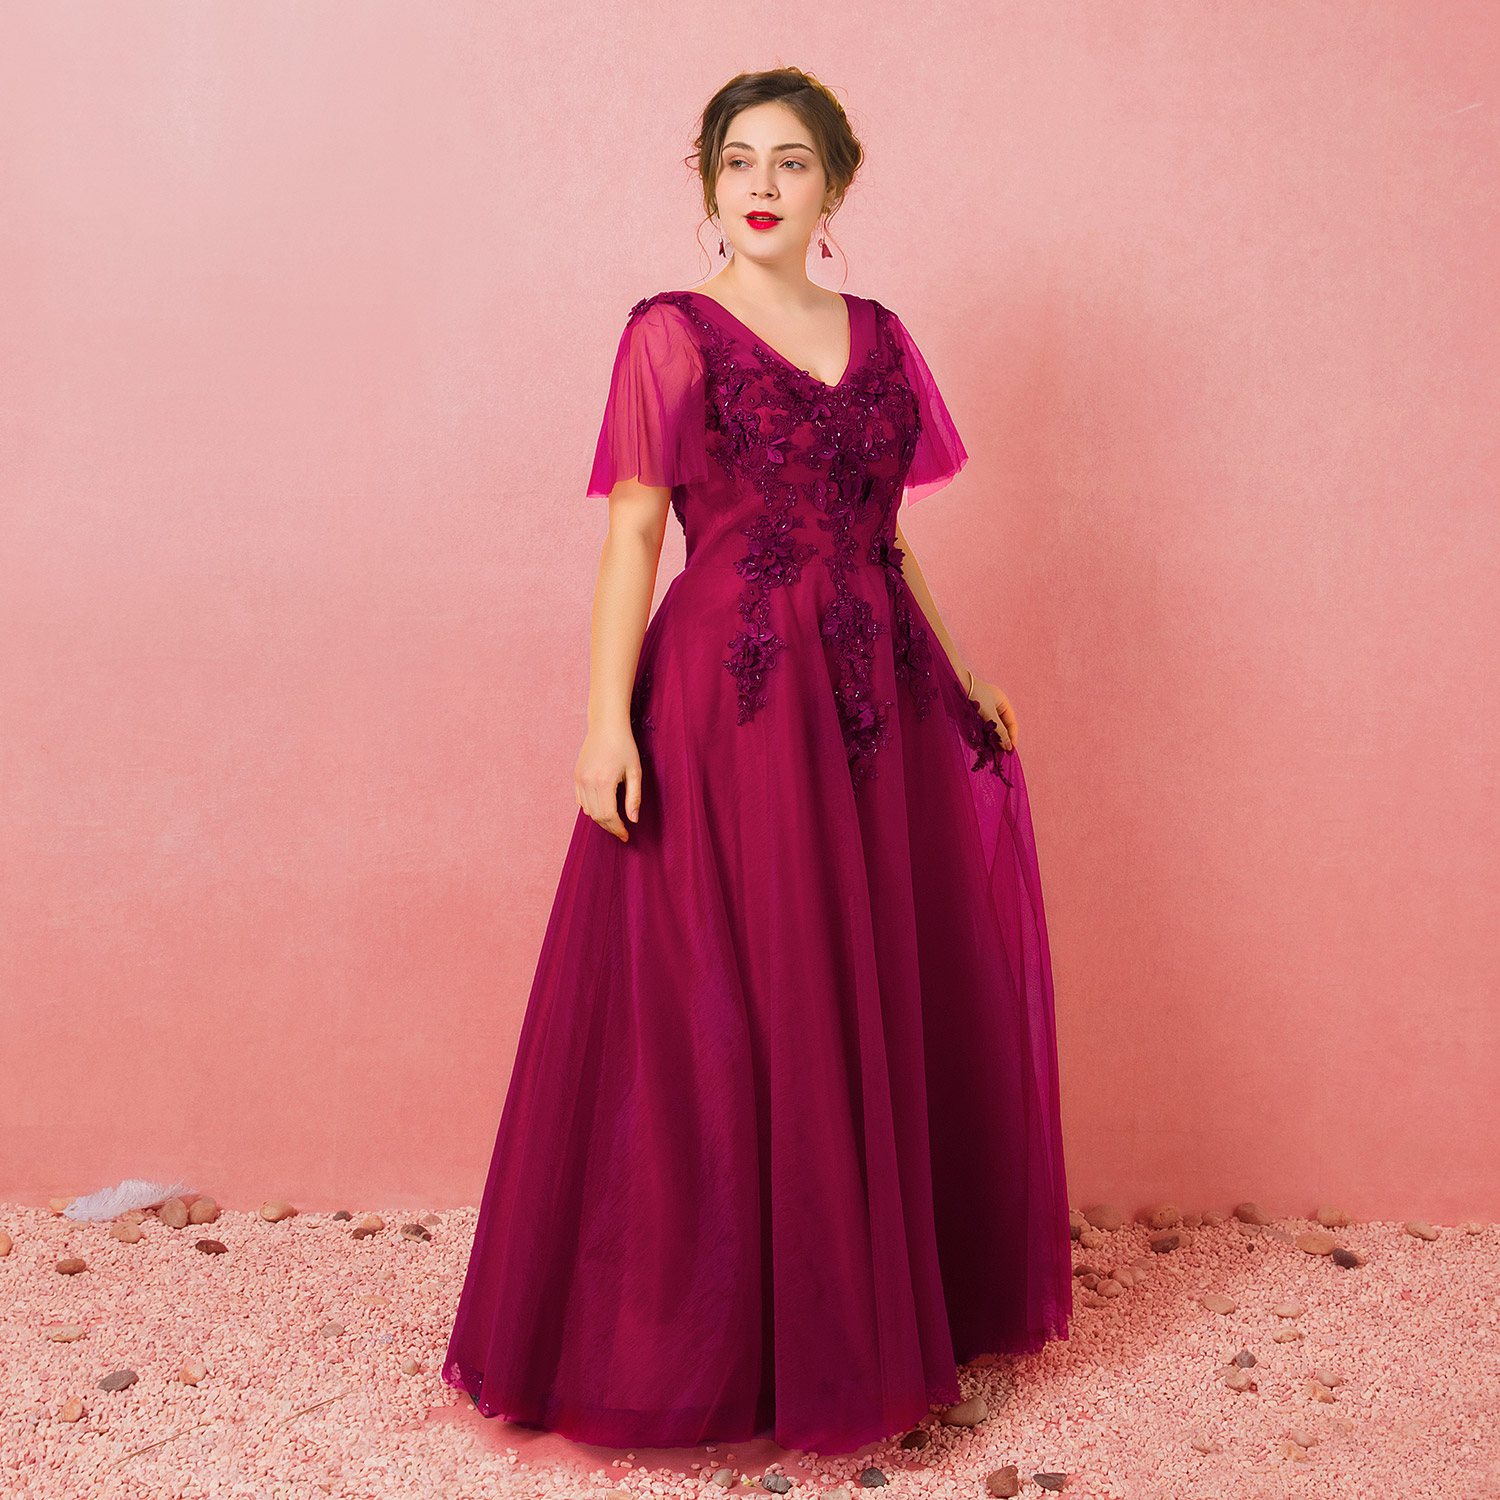 Evening Dresses 2019 Fashion A-line V-neck Natural Floor-length Lace-up Llusion Party Gown